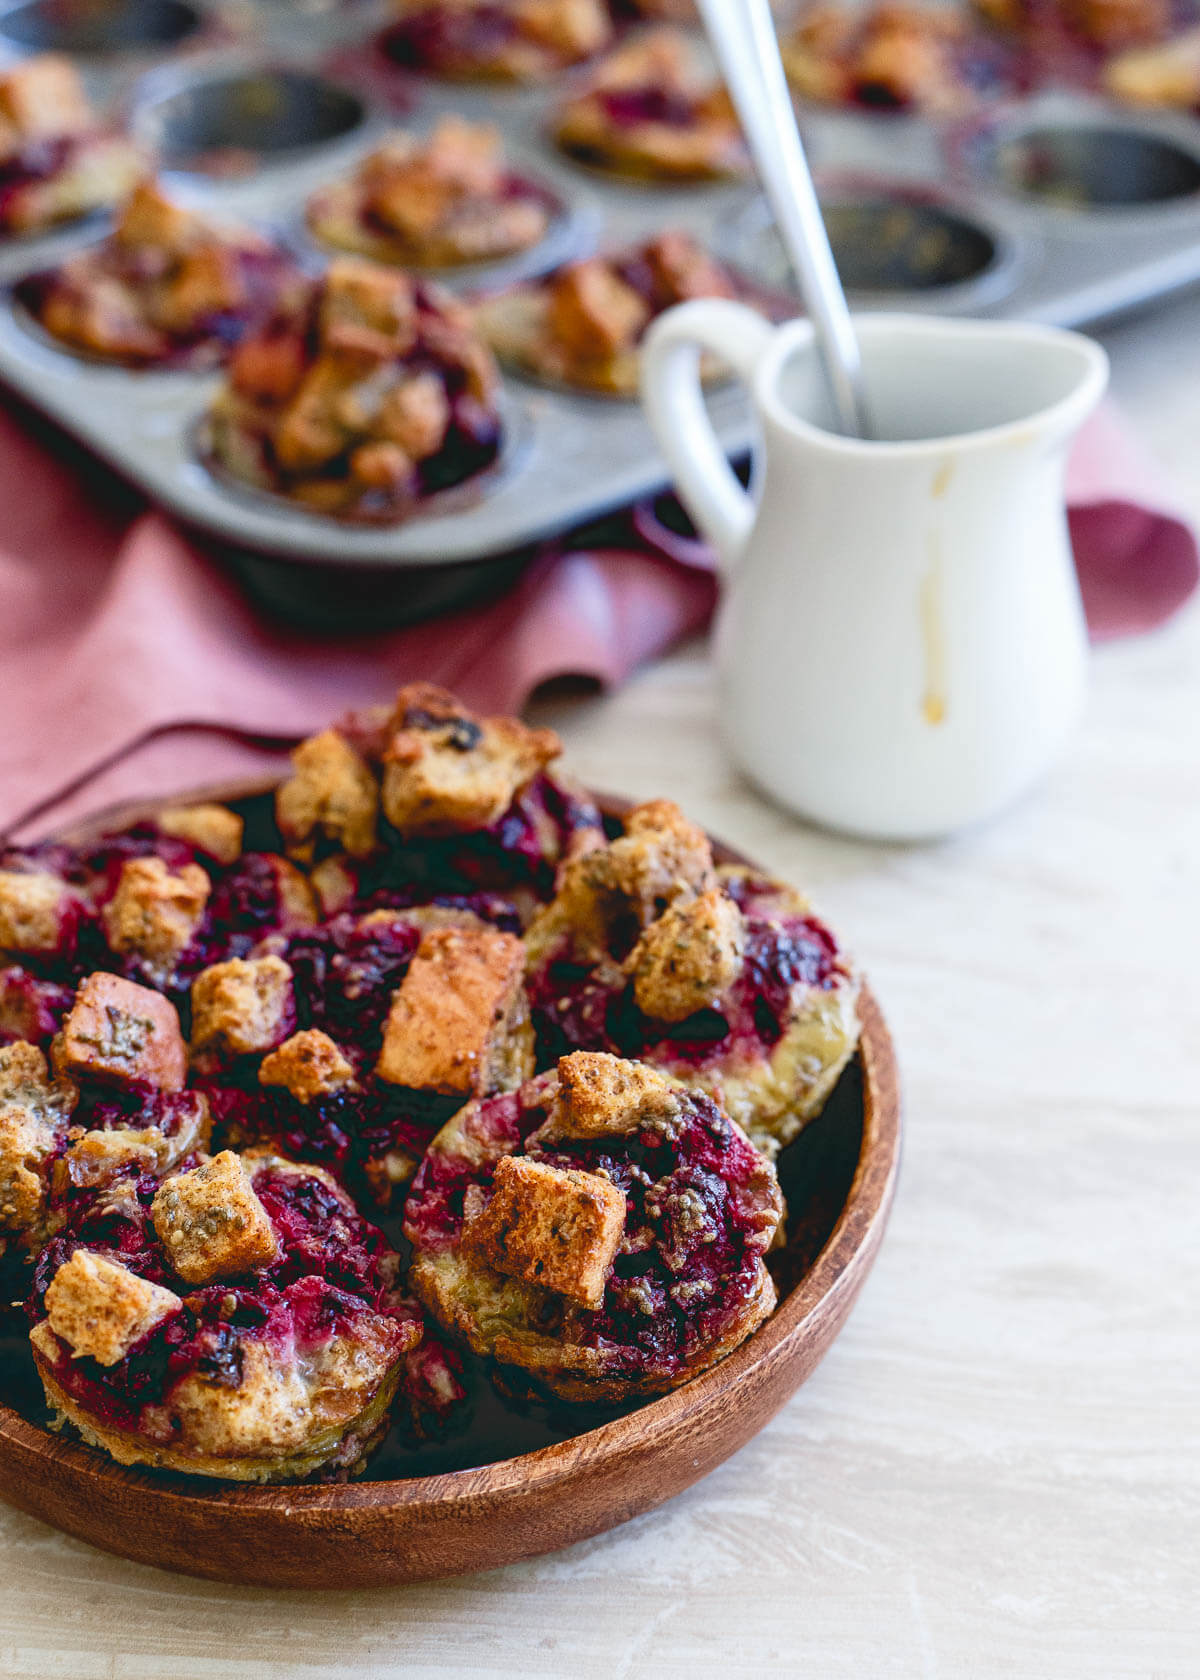 These cinnamon raisin French toast bites are bursting with fresh blackberry ginger sauce. Baked in a mini-muffin tin, they're the perfect size for breakfast on the go!